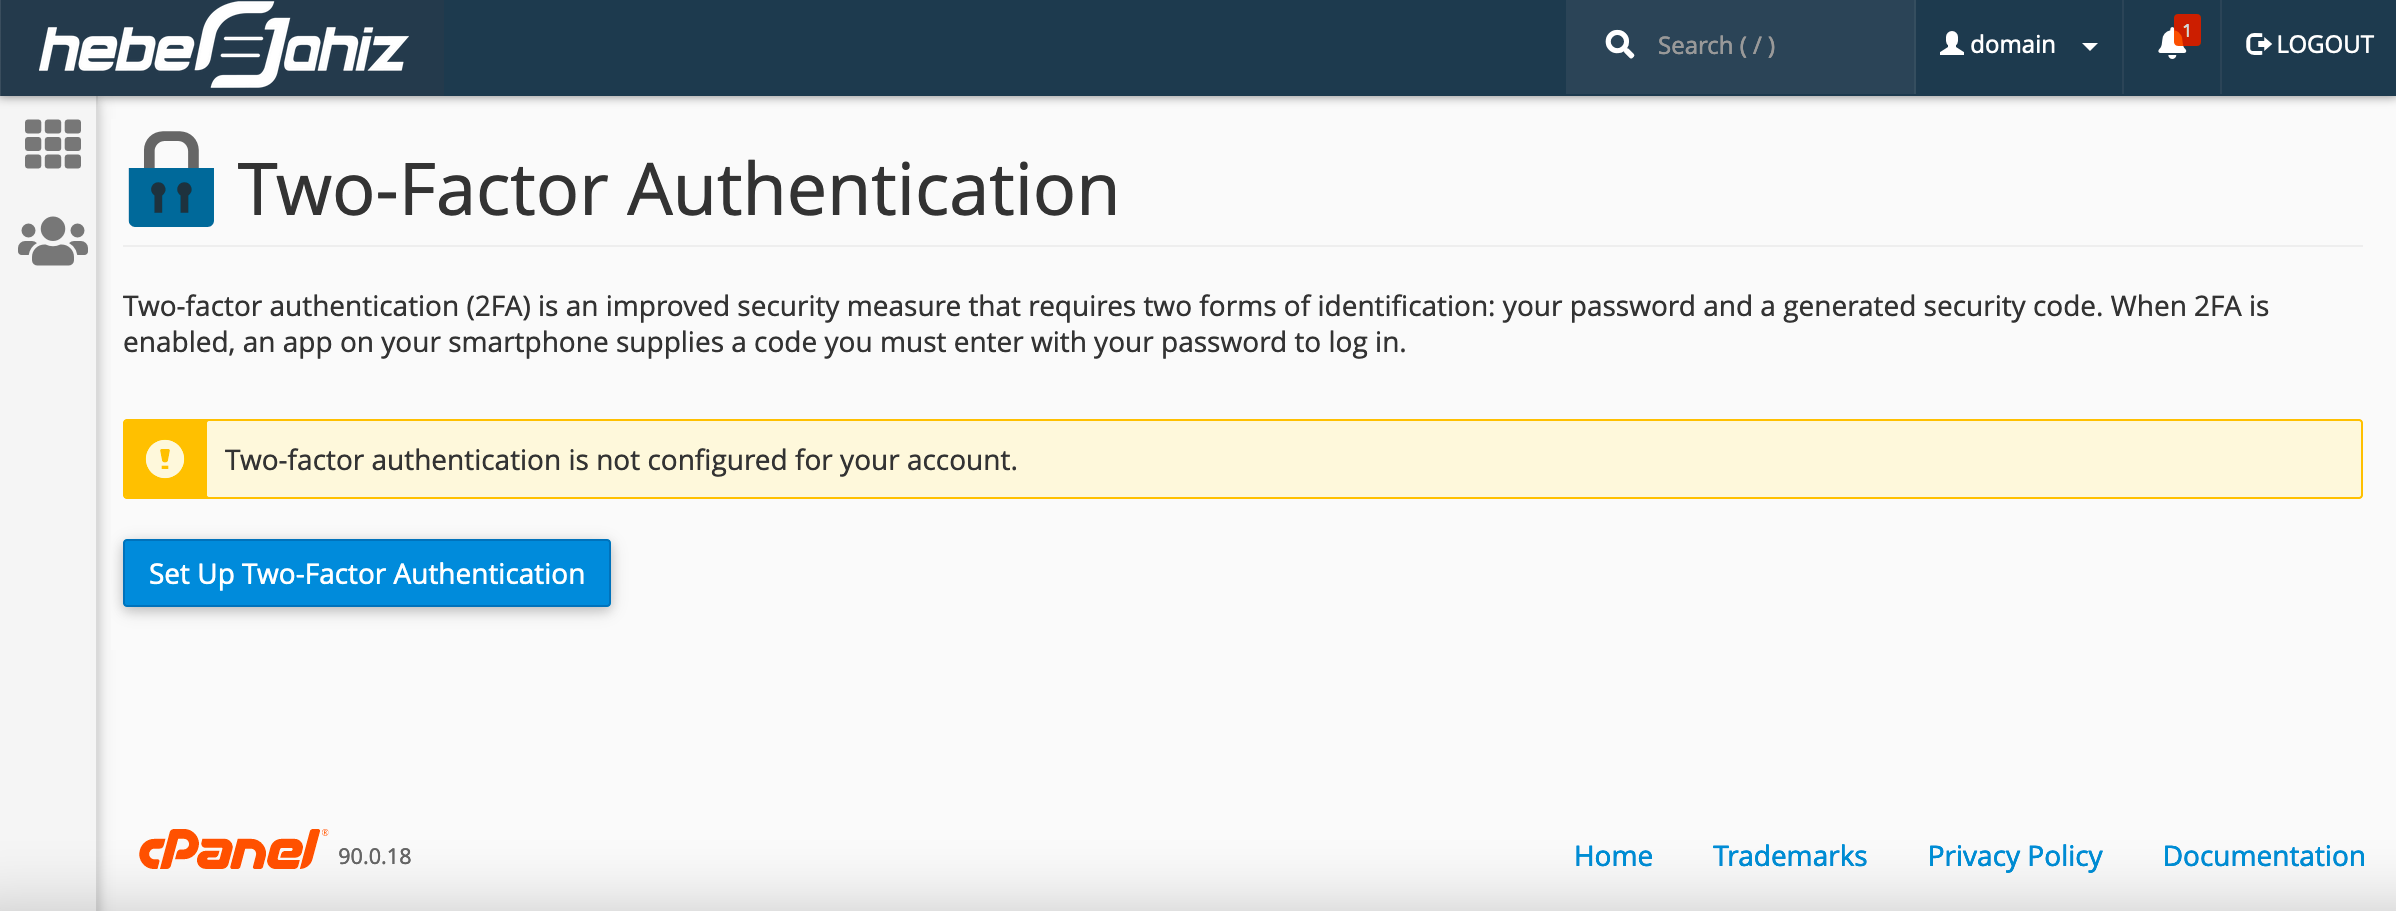 cPanel : Setup Two-Factor Authentication